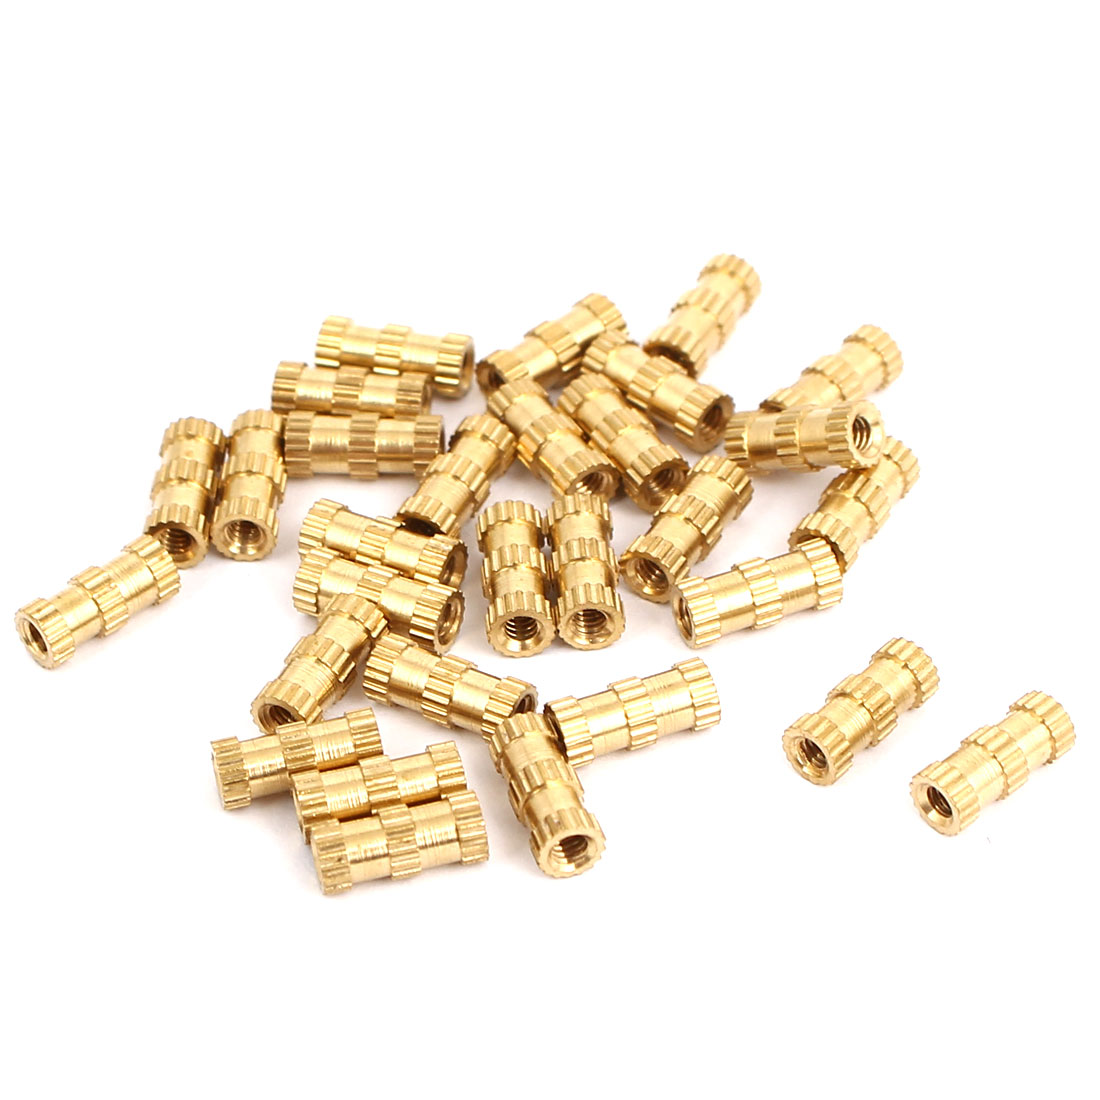 M2x8mmx3.5mm Brass Knurled Threaded Nut Insert Embedded Nuts Gold Tone 30pcs